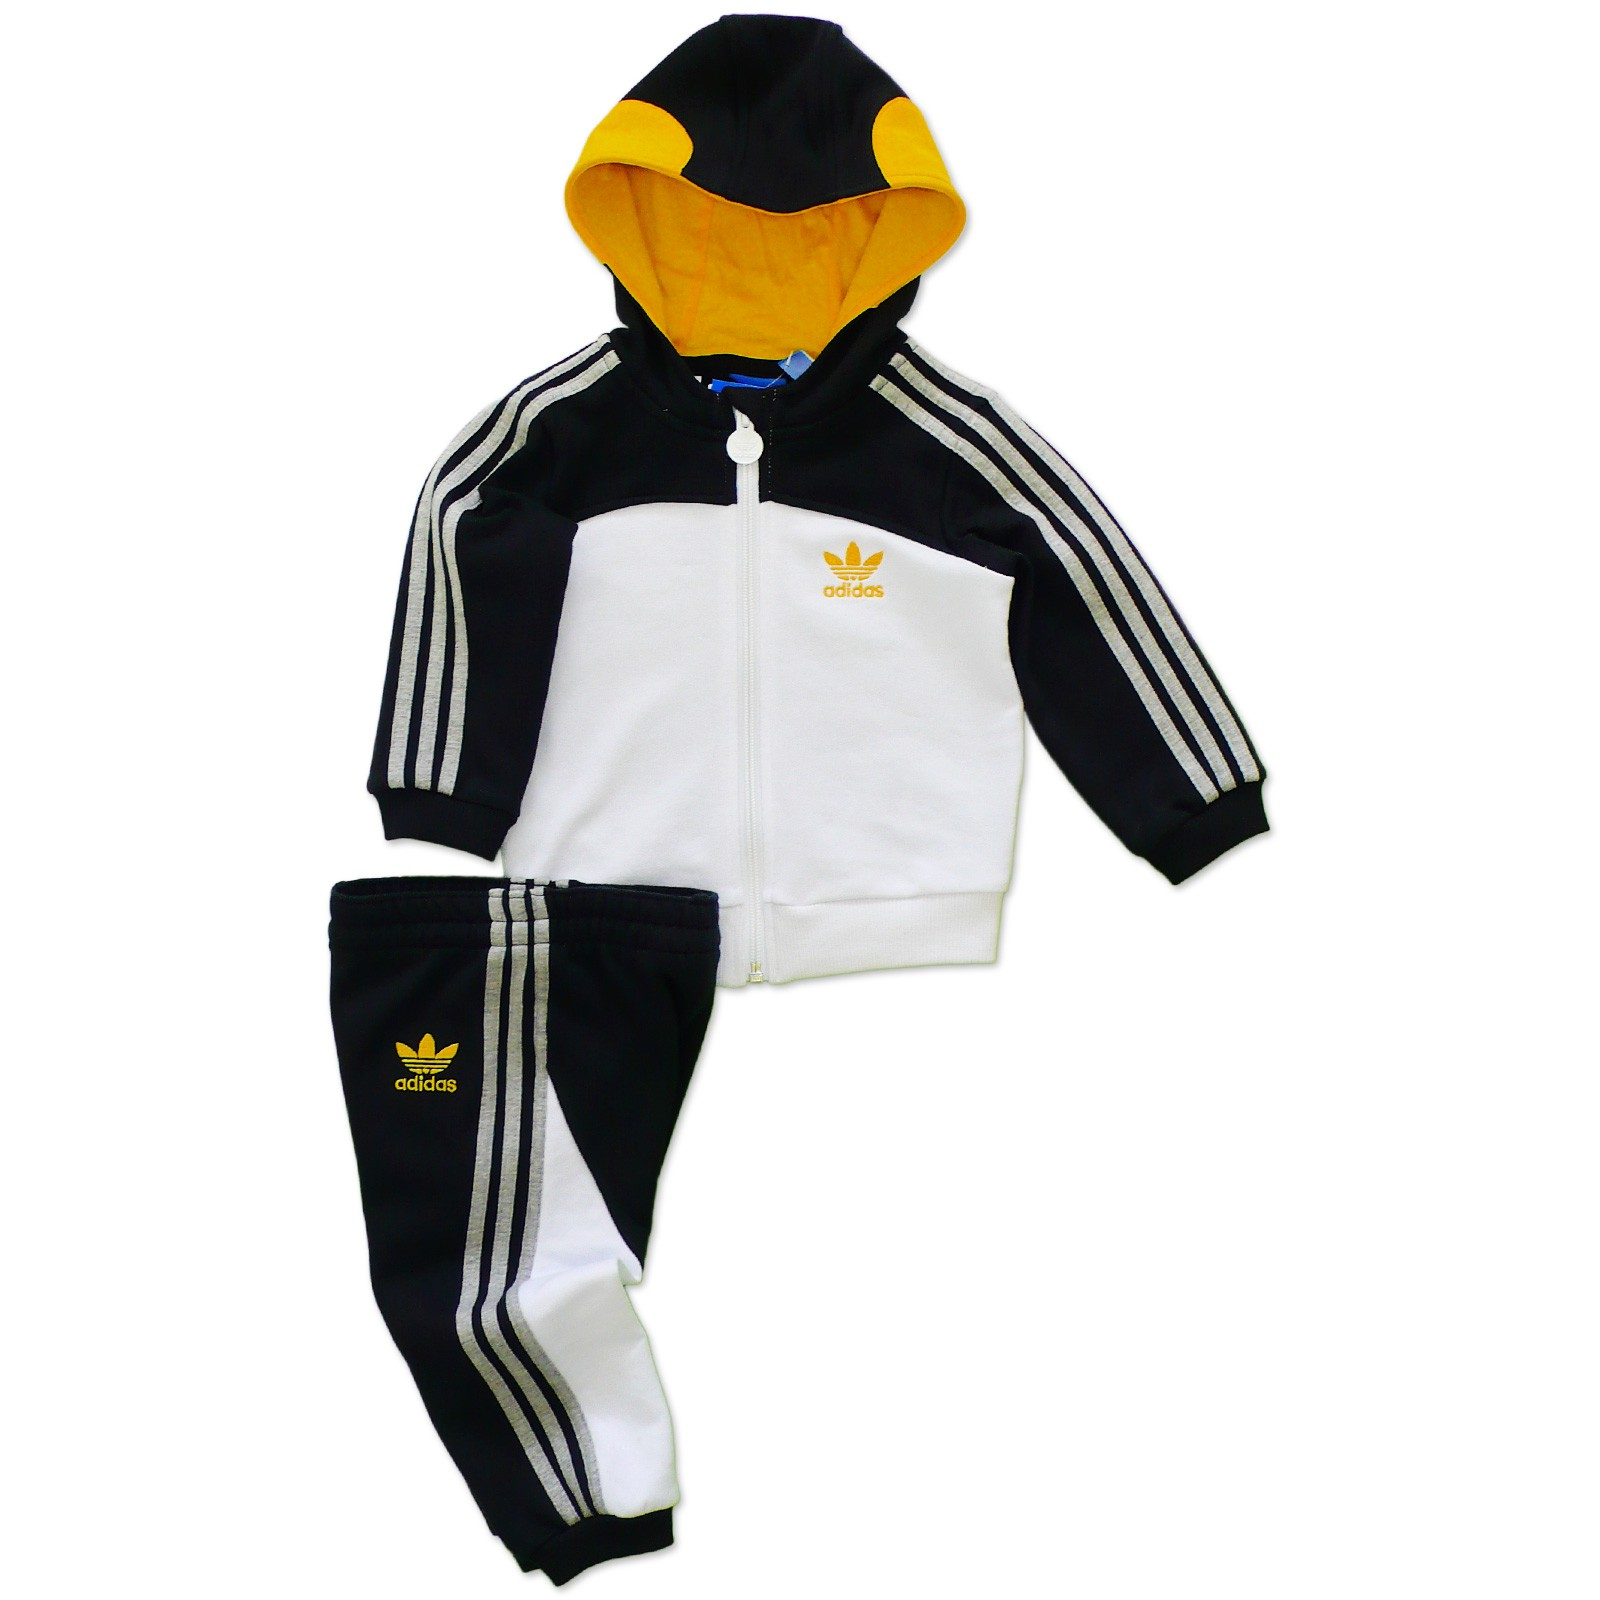 adidas originals kinder pinguin jogger trainingsanzug sport anzug jacke hose ebay. Black Bedroom Furniture Sets. Home Design Ideas